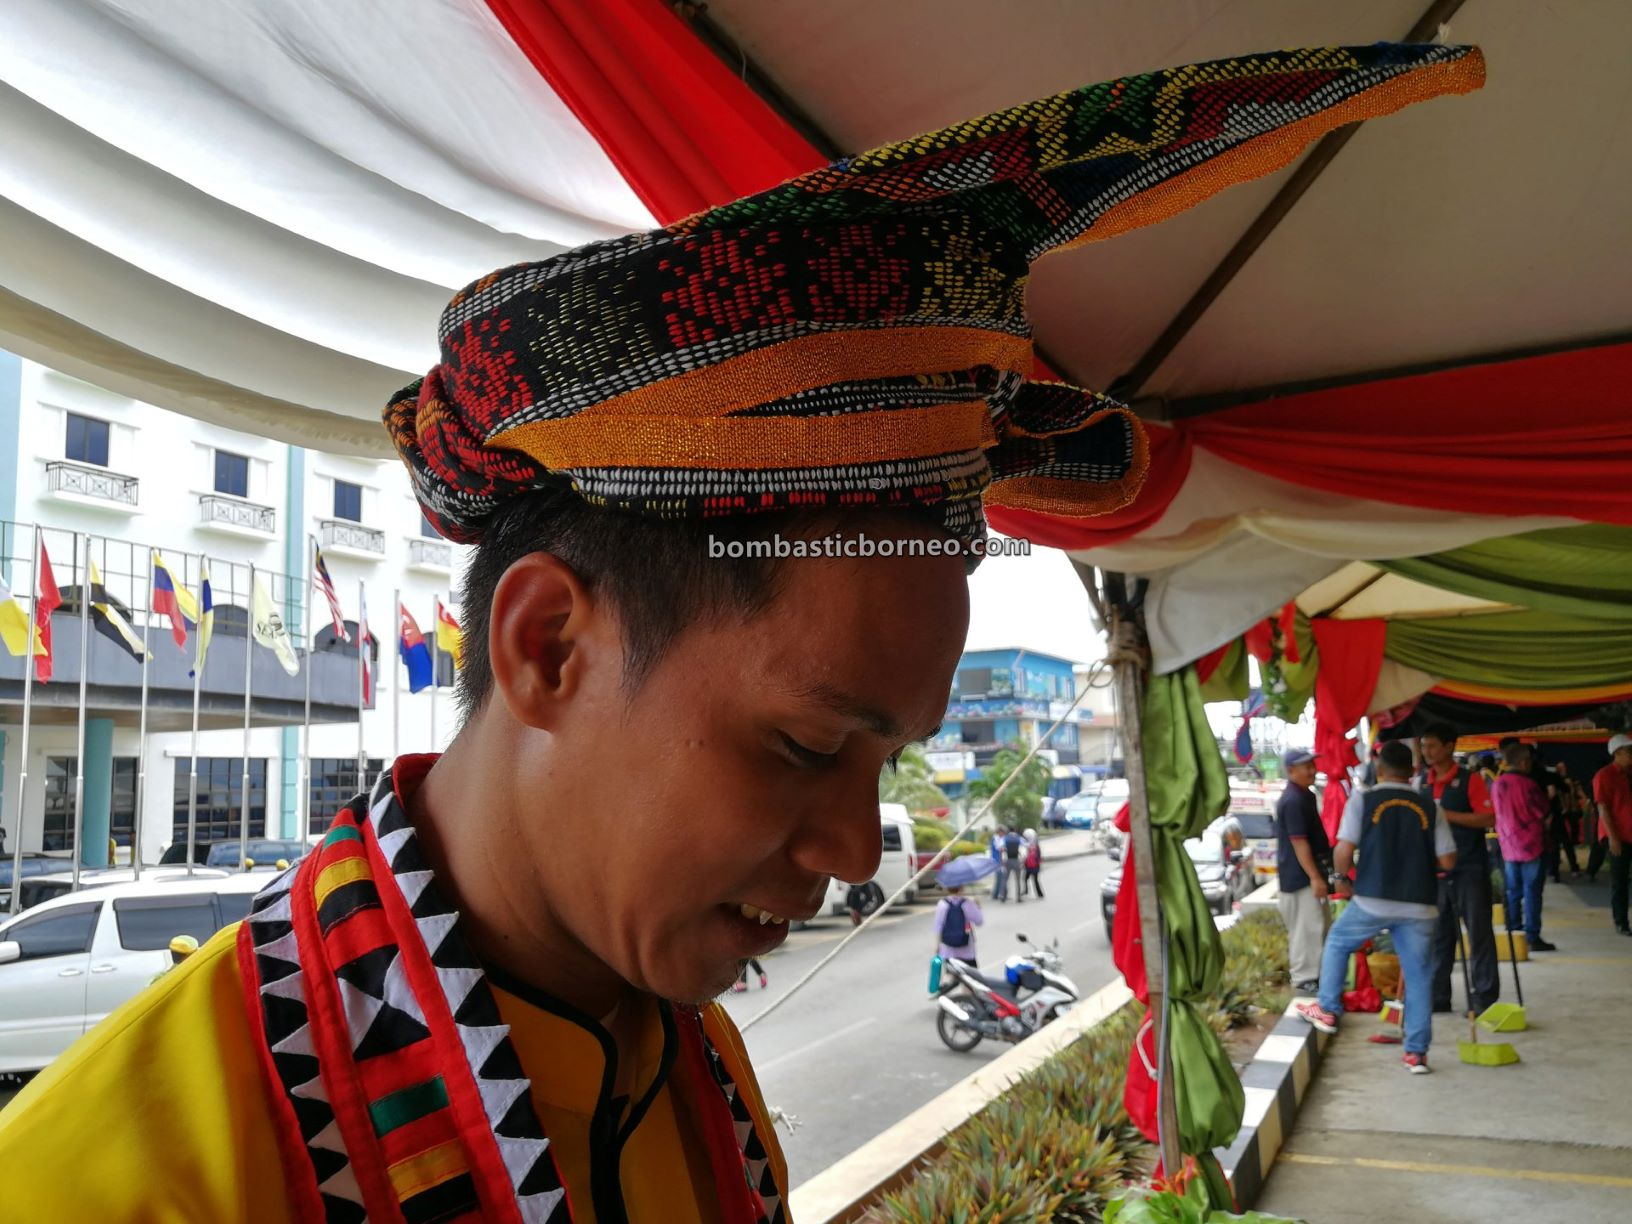 Water Festival, Pesta Regatta Lepa, etnik, budaya, culture, event, indigenous, Tawau, Semporna, Tourism, tourist attraction, travel guide, 跨境婆罗洲游踪, 仙本那彩船节, 沙巴传统文化